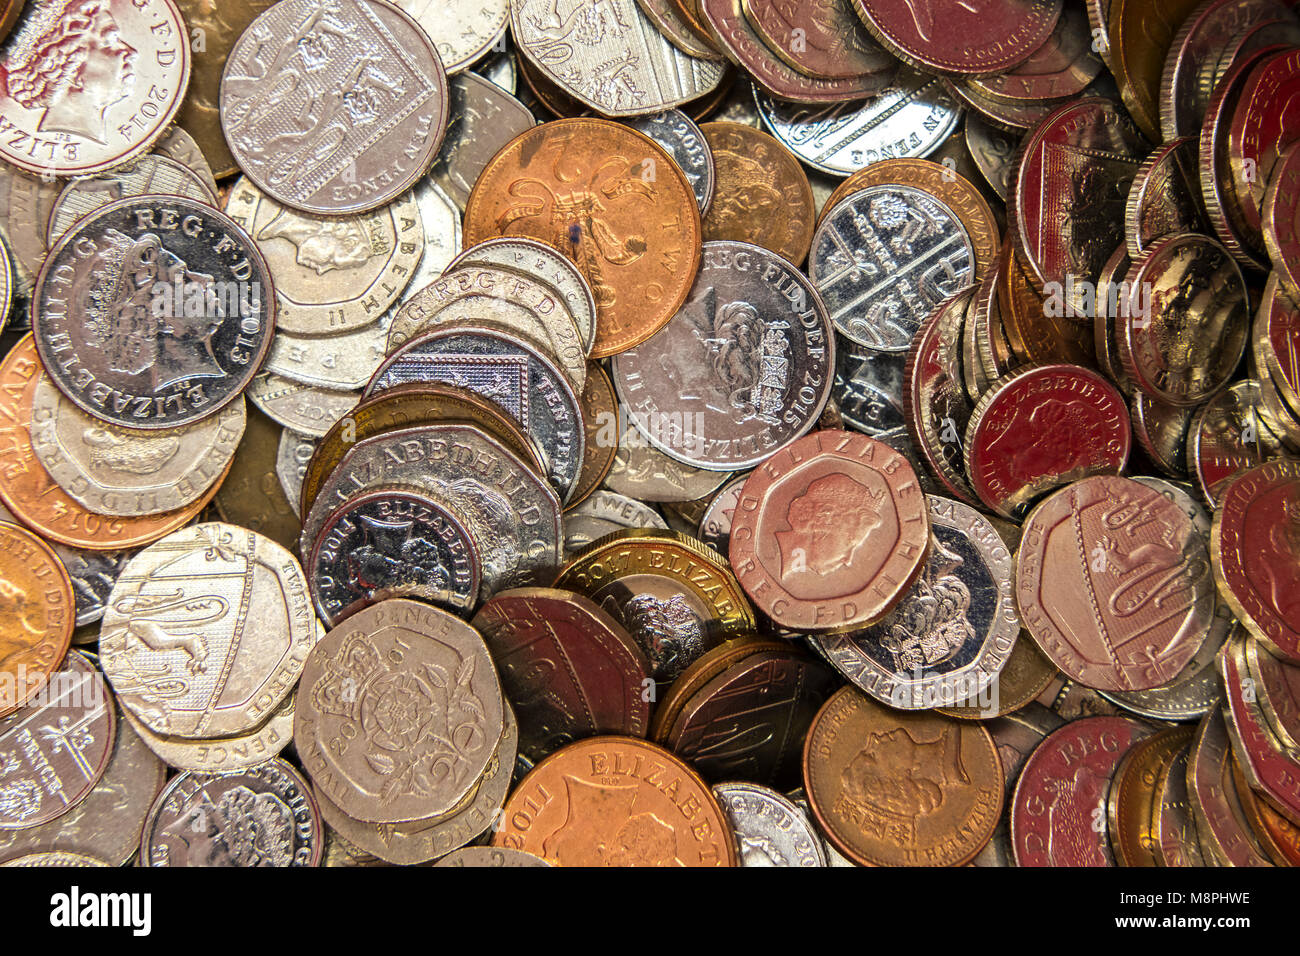 collection of 1p,2p,5p,10p,20,50p and £1 coins Stock Photo